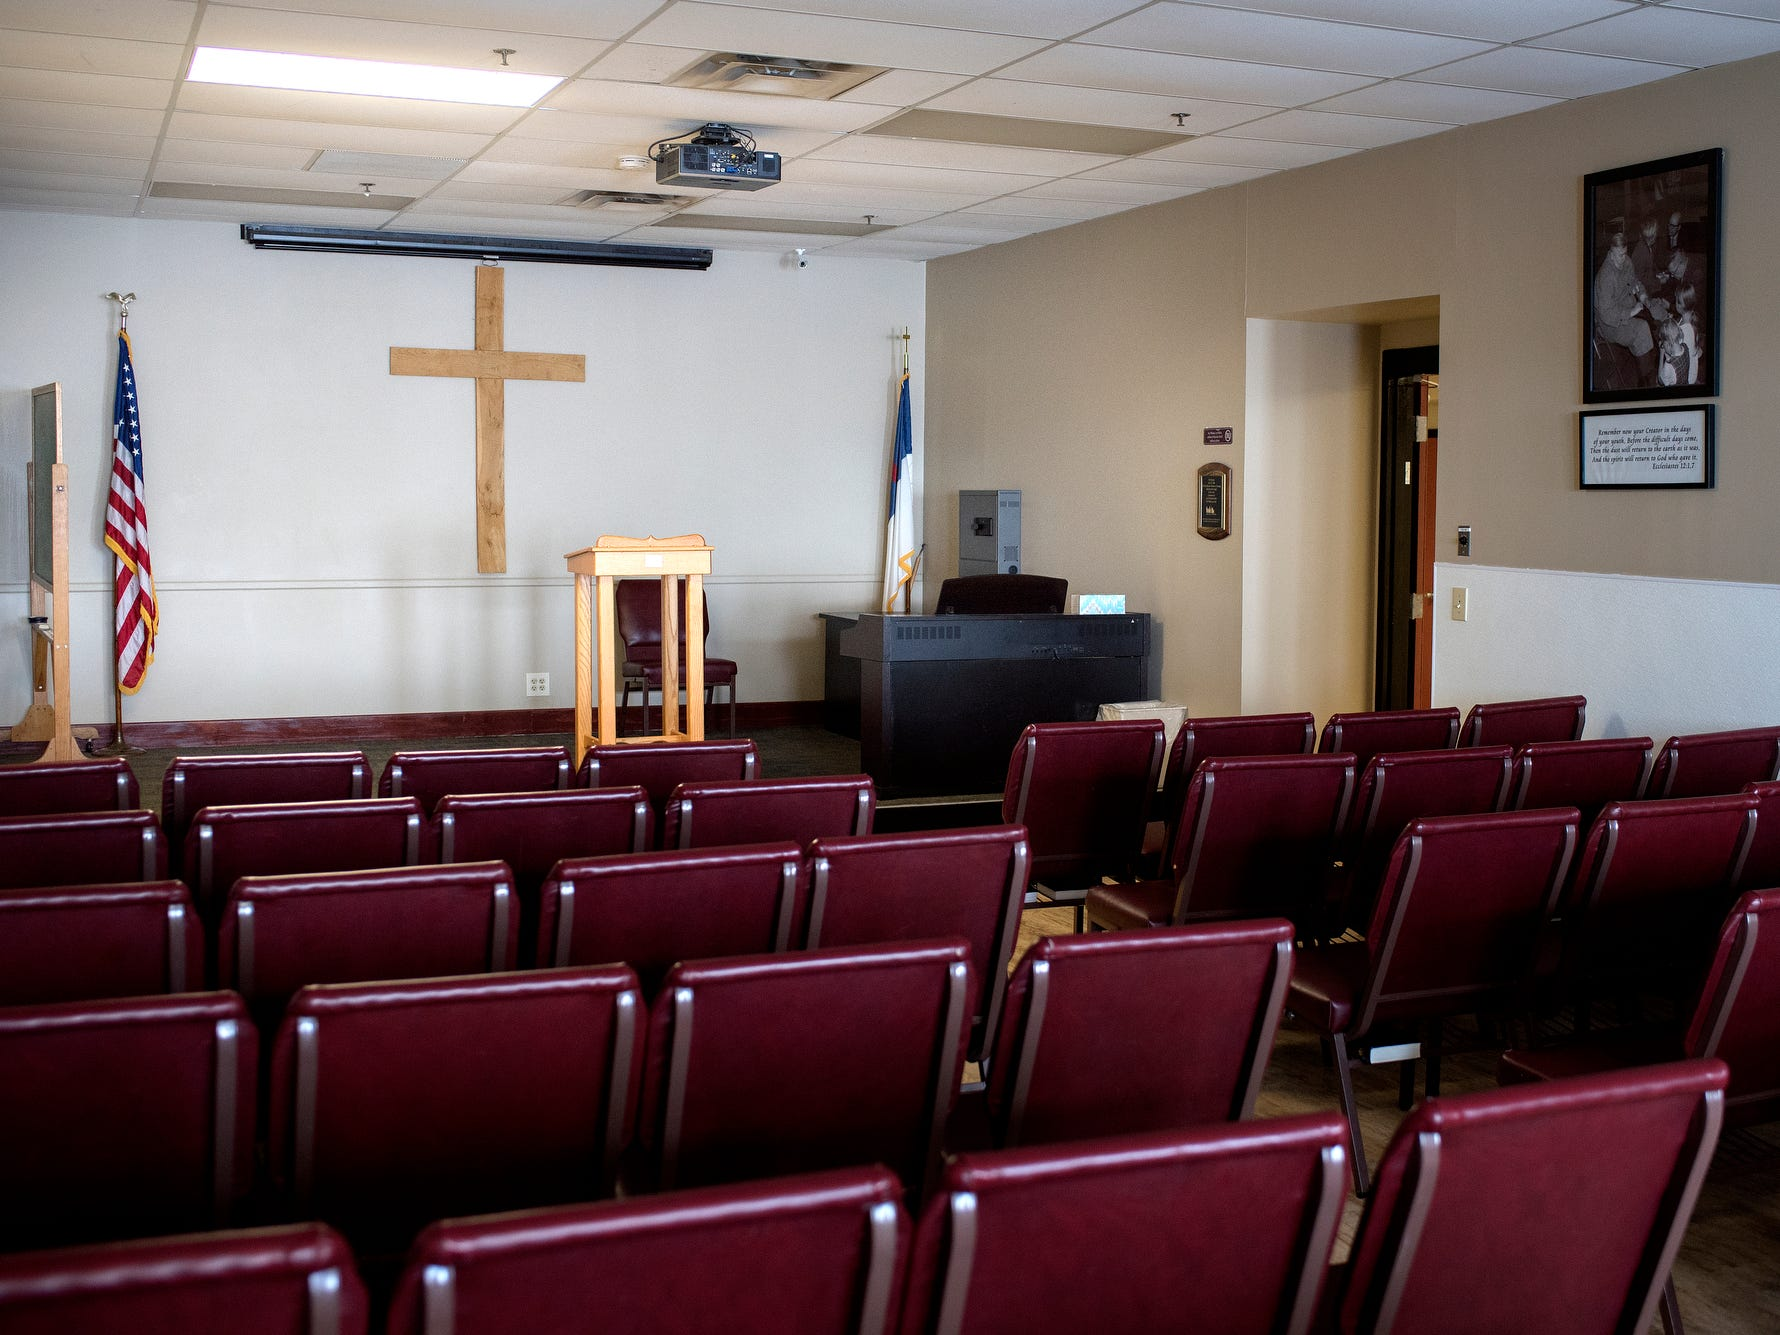 The chapel photographed during a tour of the City Rescue Mission on Tuesday, Sept. 4, 2018, in downtown Lansing.